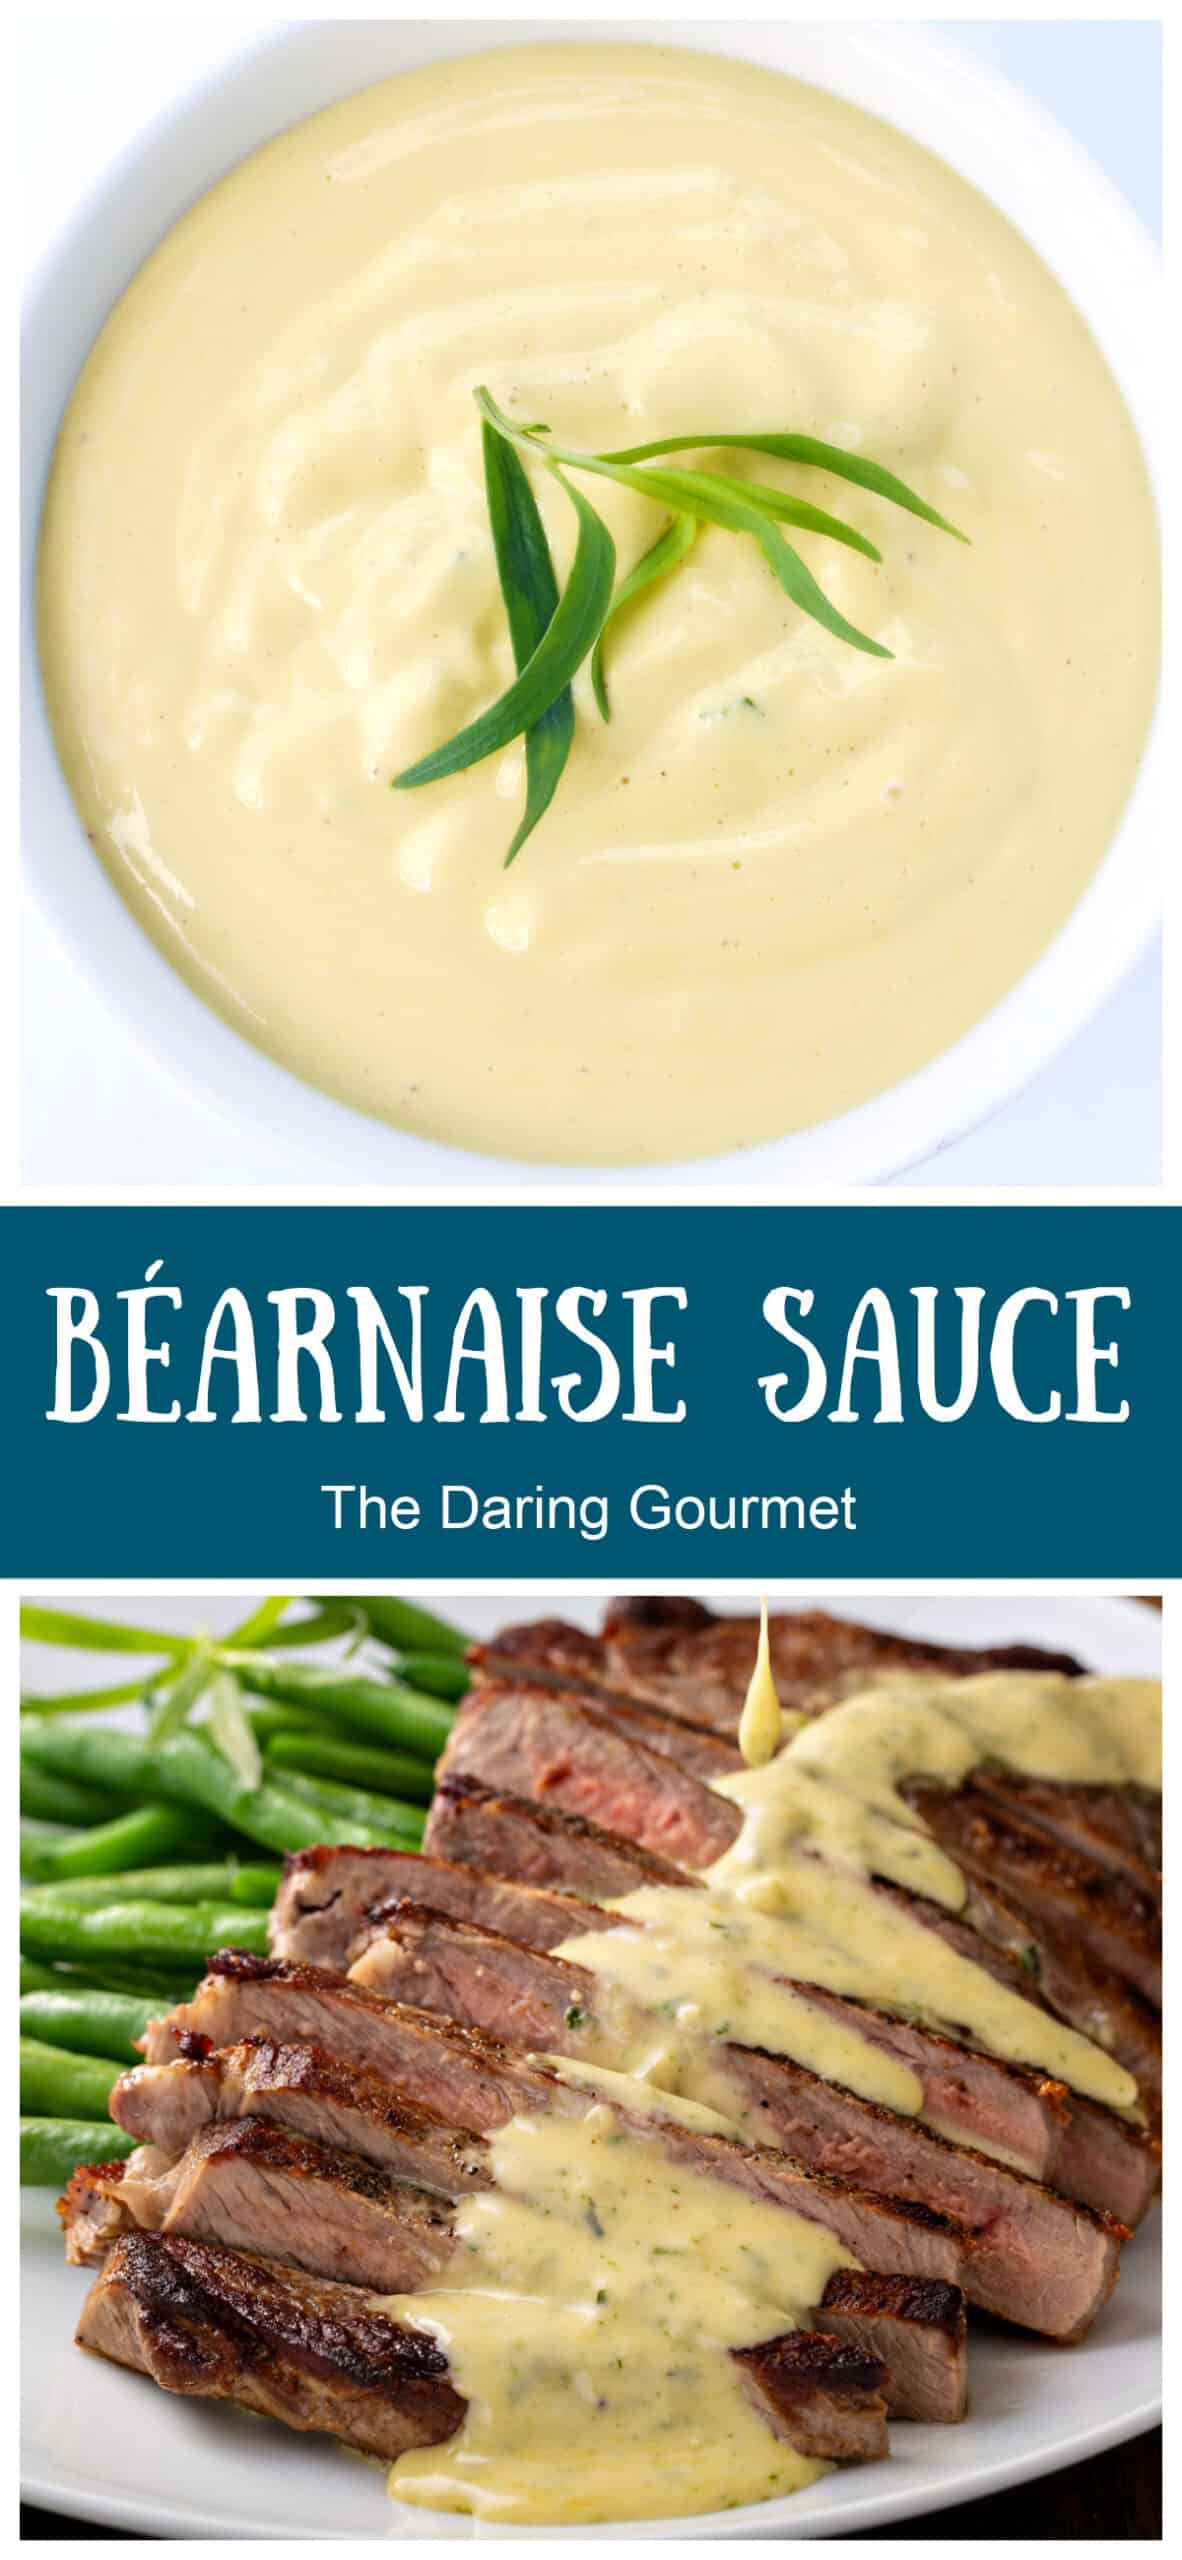 bearnaise sauce recipe French steak condiment classic traditional authentic remoulade tarragon